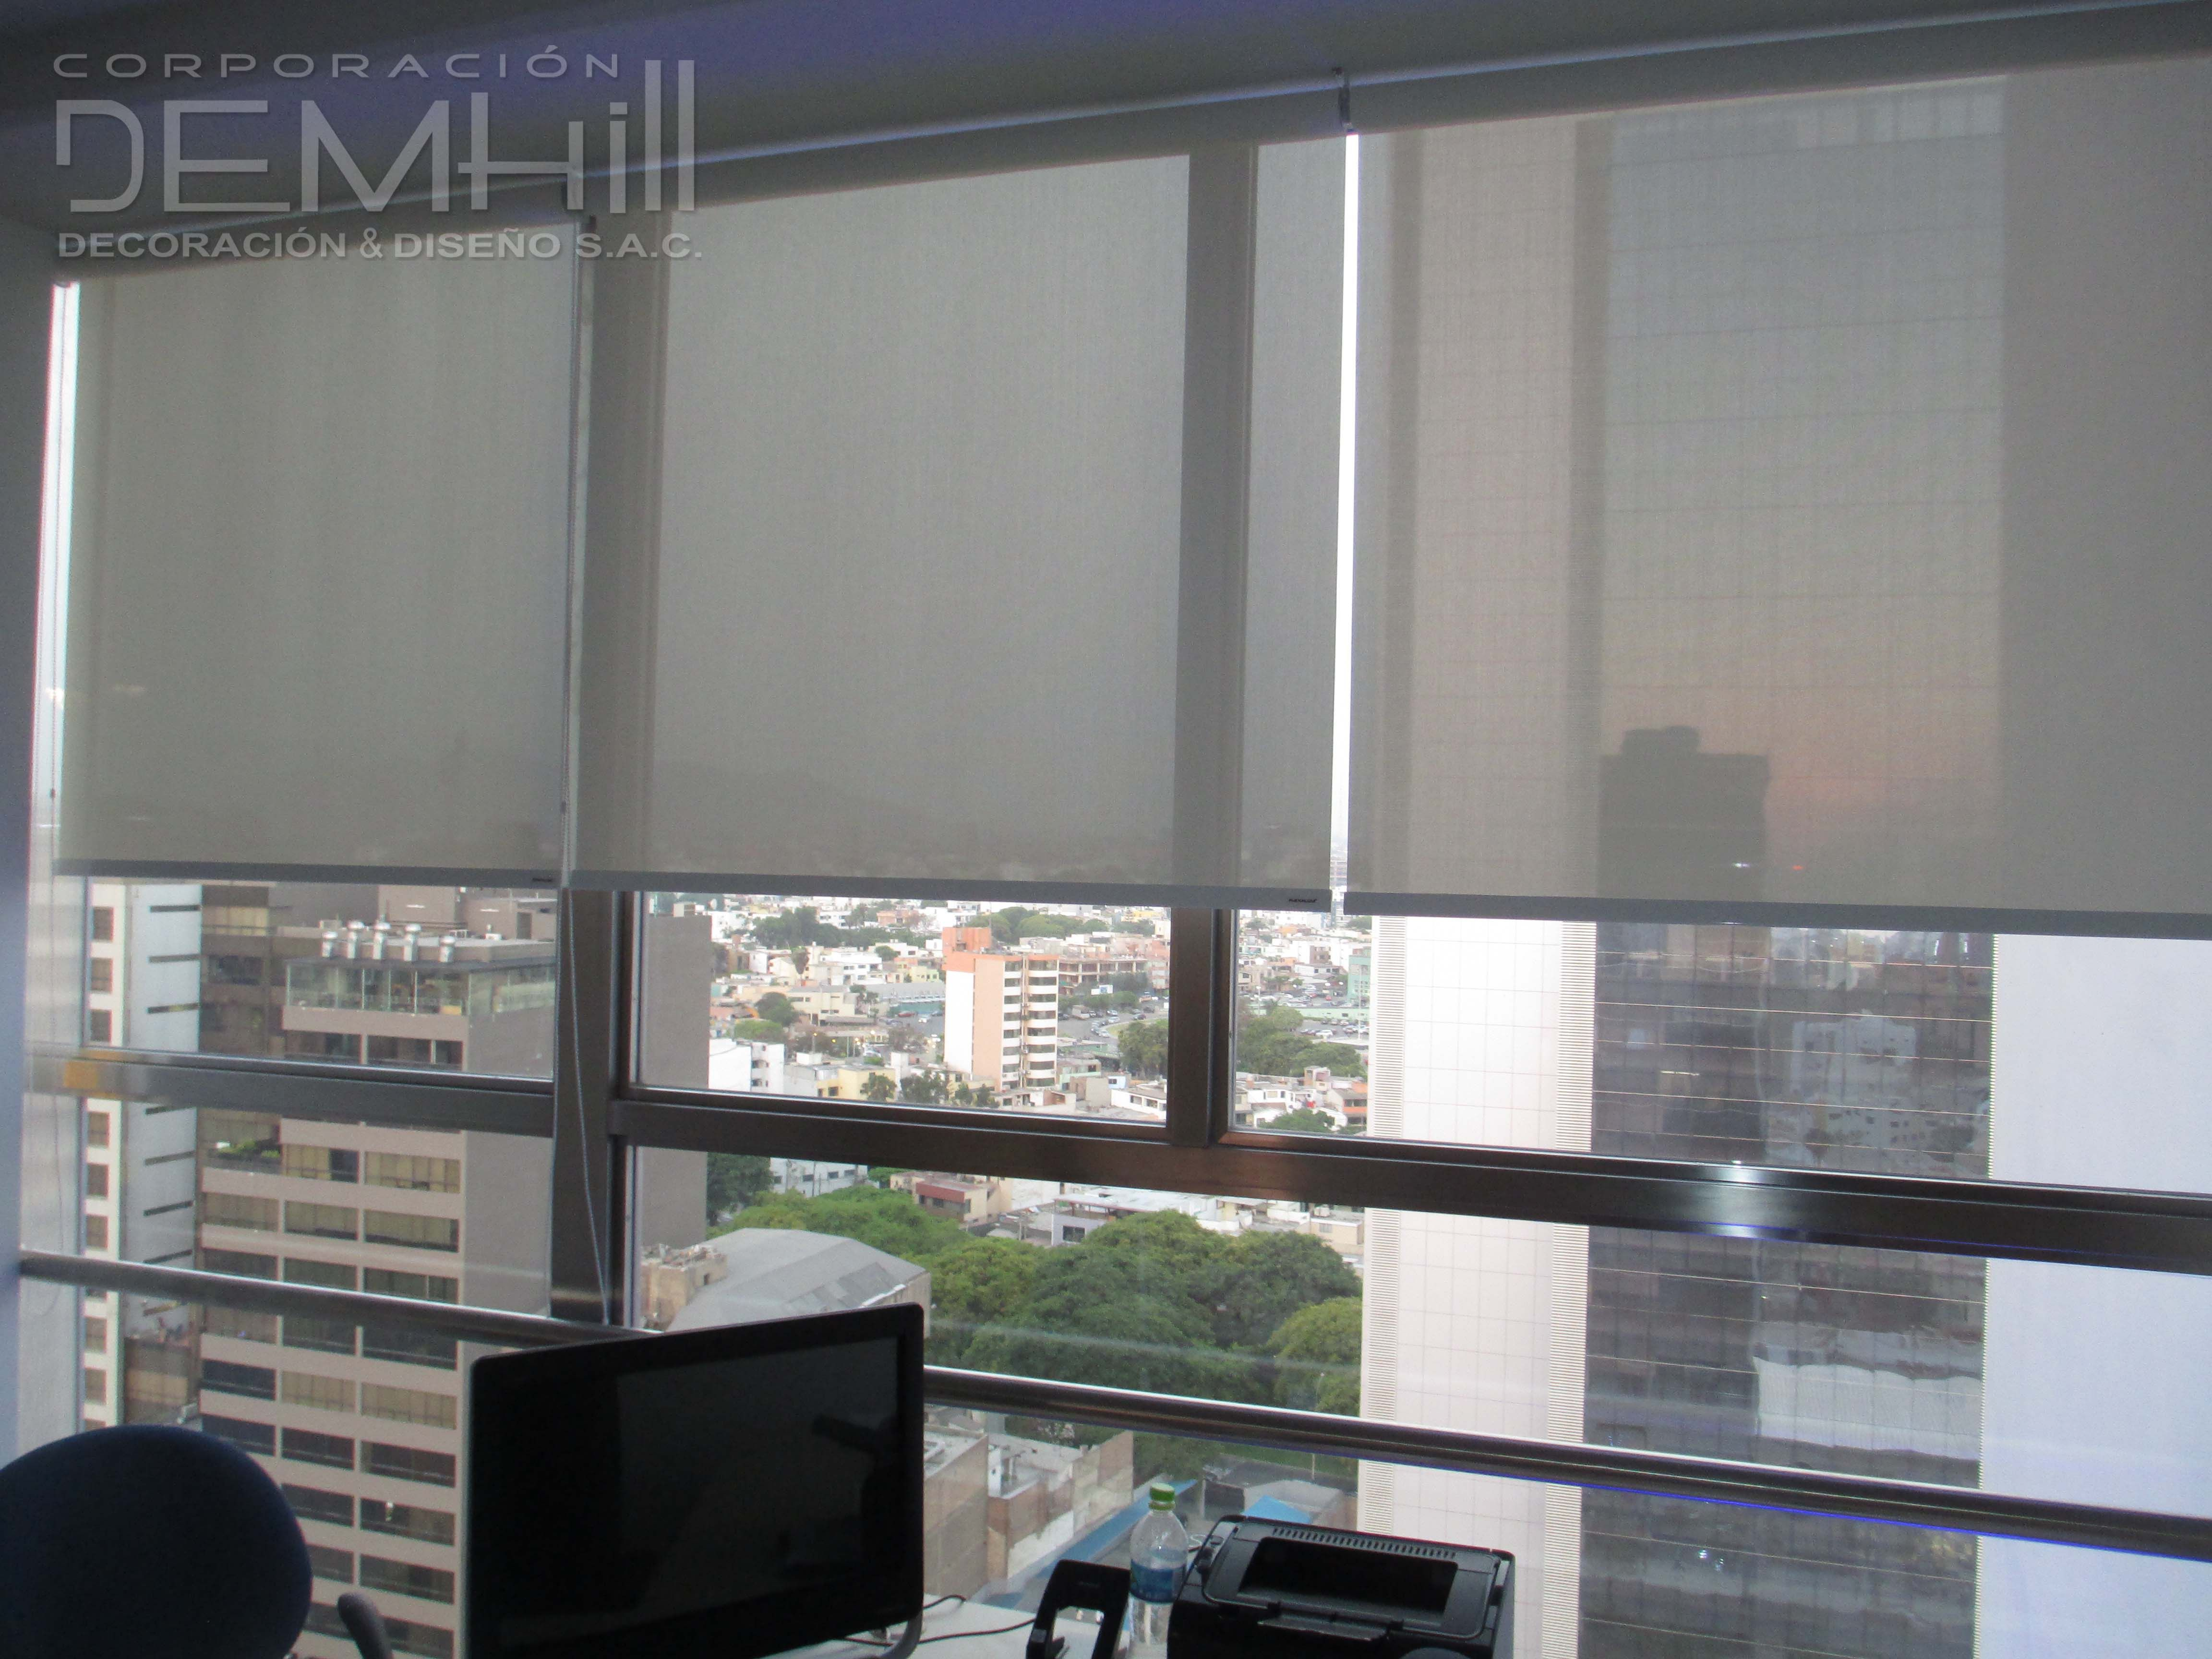 Demhill Cortinas Roller Lince, Lima, Per Wwwdemhillcompe